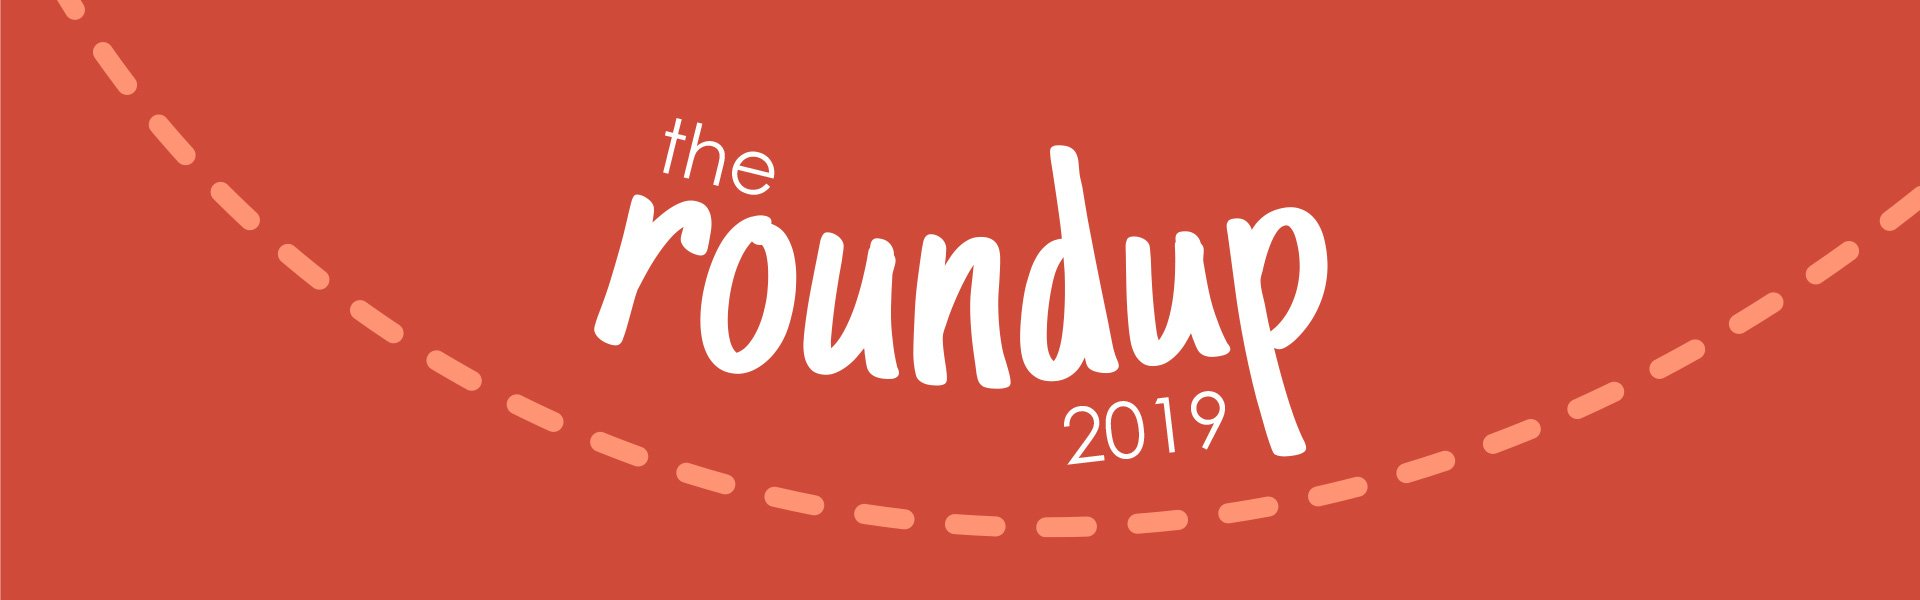 The roundup 2019